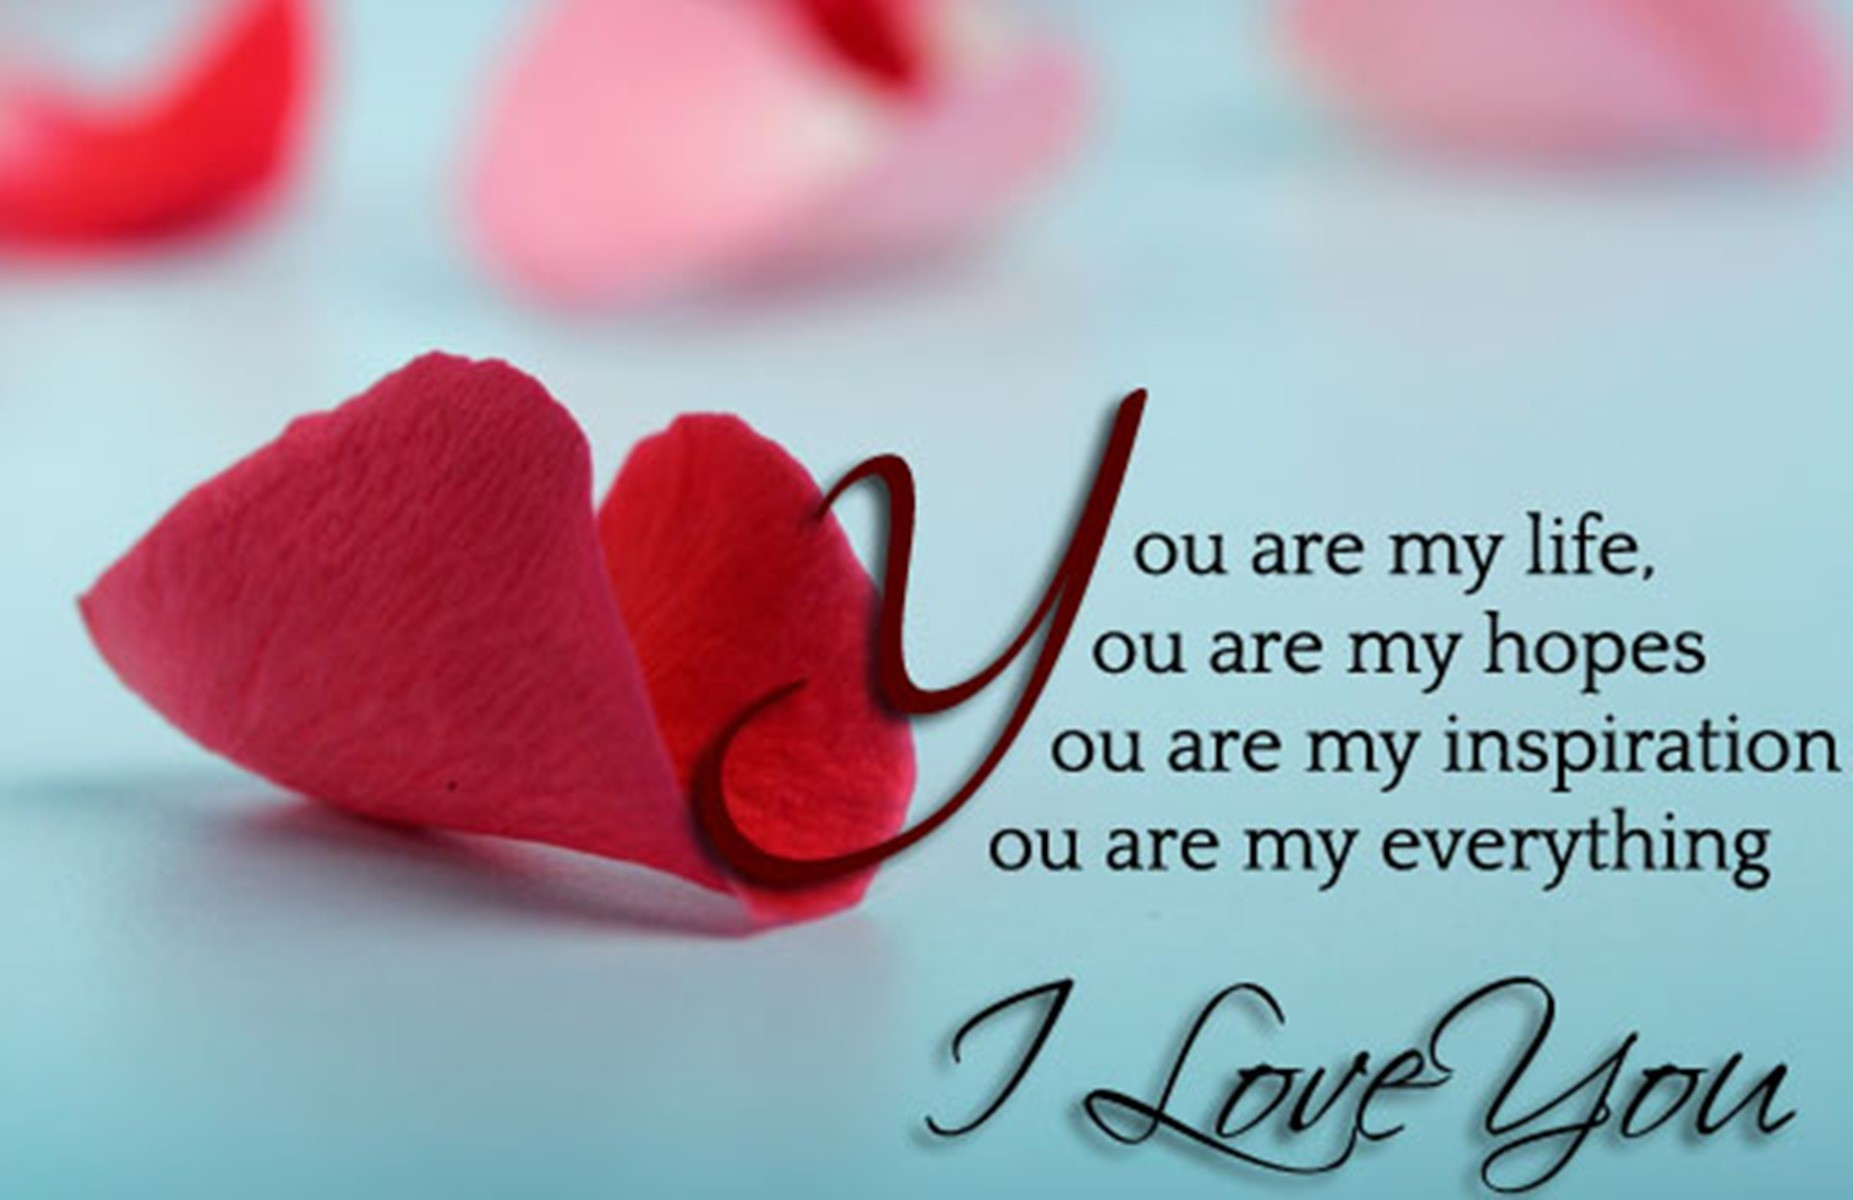 Heart Touching Love Quotes Hd Wallpapers Live Love Quotes Wallpapers